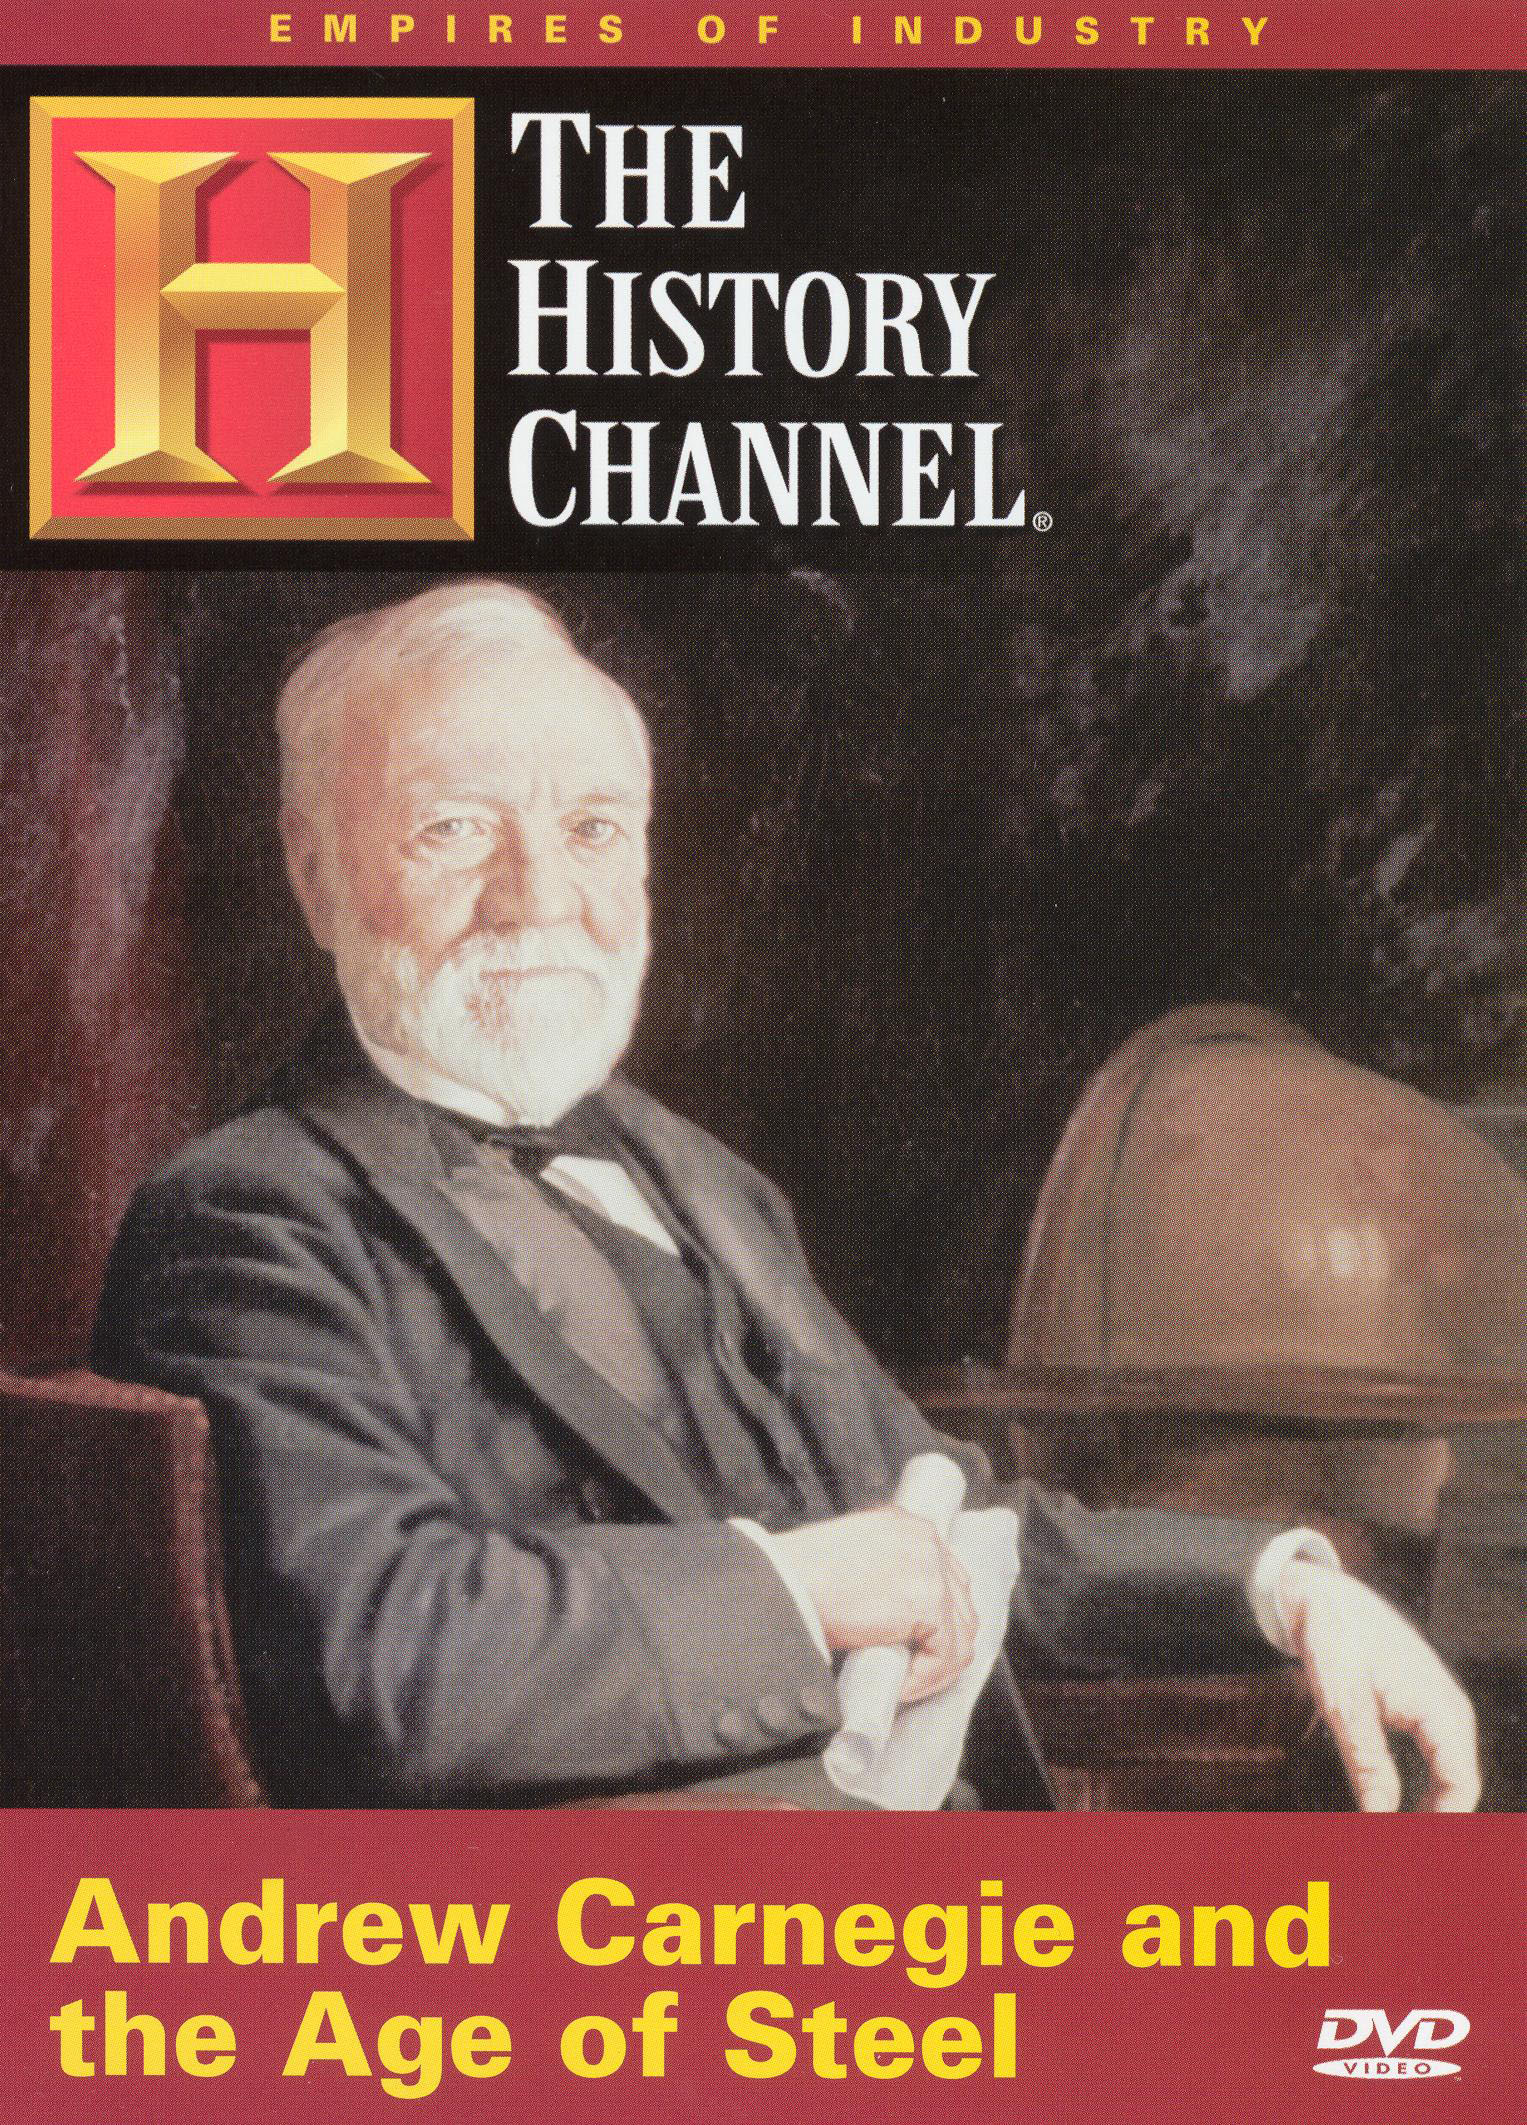 The Empires of Industry: Andrew Carnegie and the Age of Steel